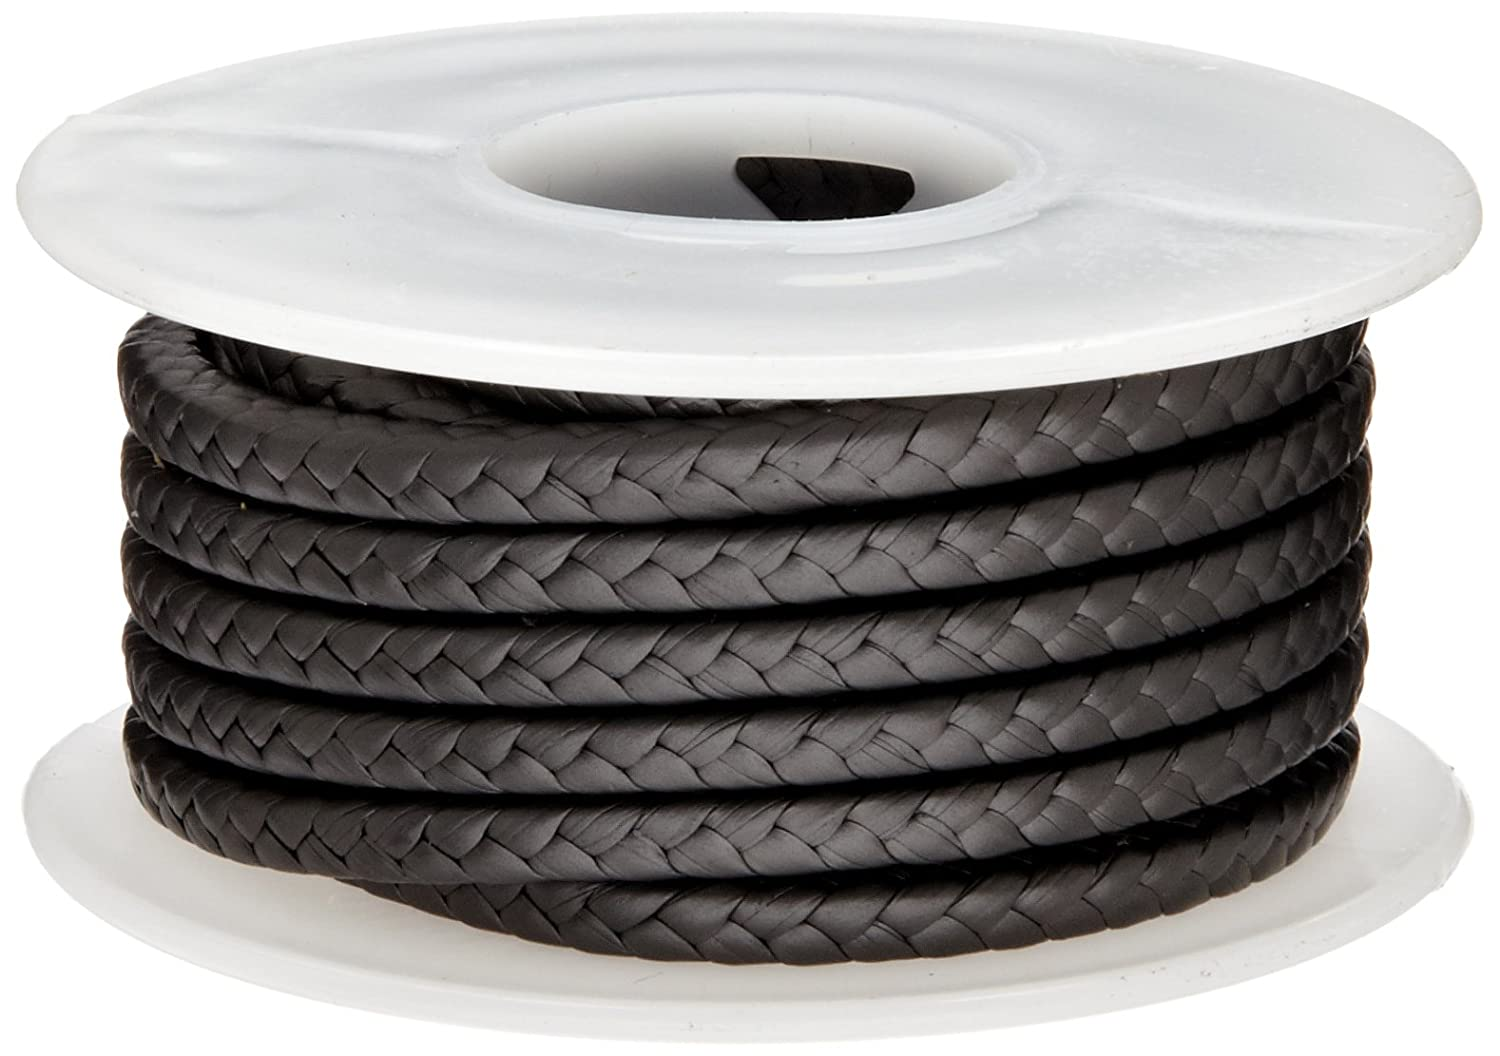 Palmetto 1382 Series Expanded PTFE with Graphite Compression Packing Seal 10 Length 1//2 Square Dull Black